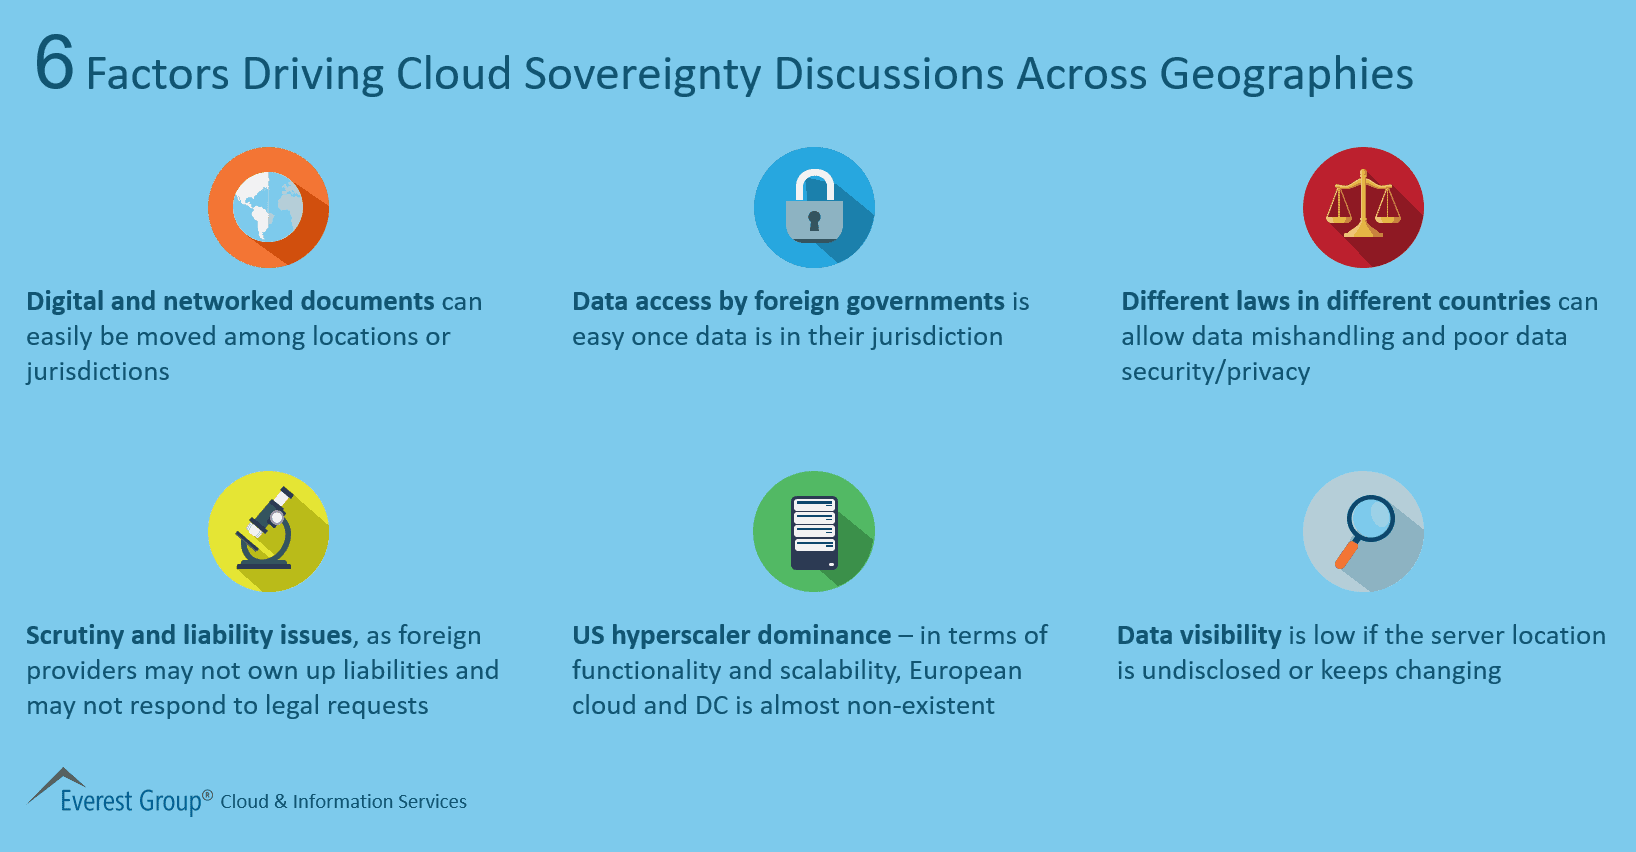 6 Factors Driving Cloud Sovereignty Discussions Across Geographies